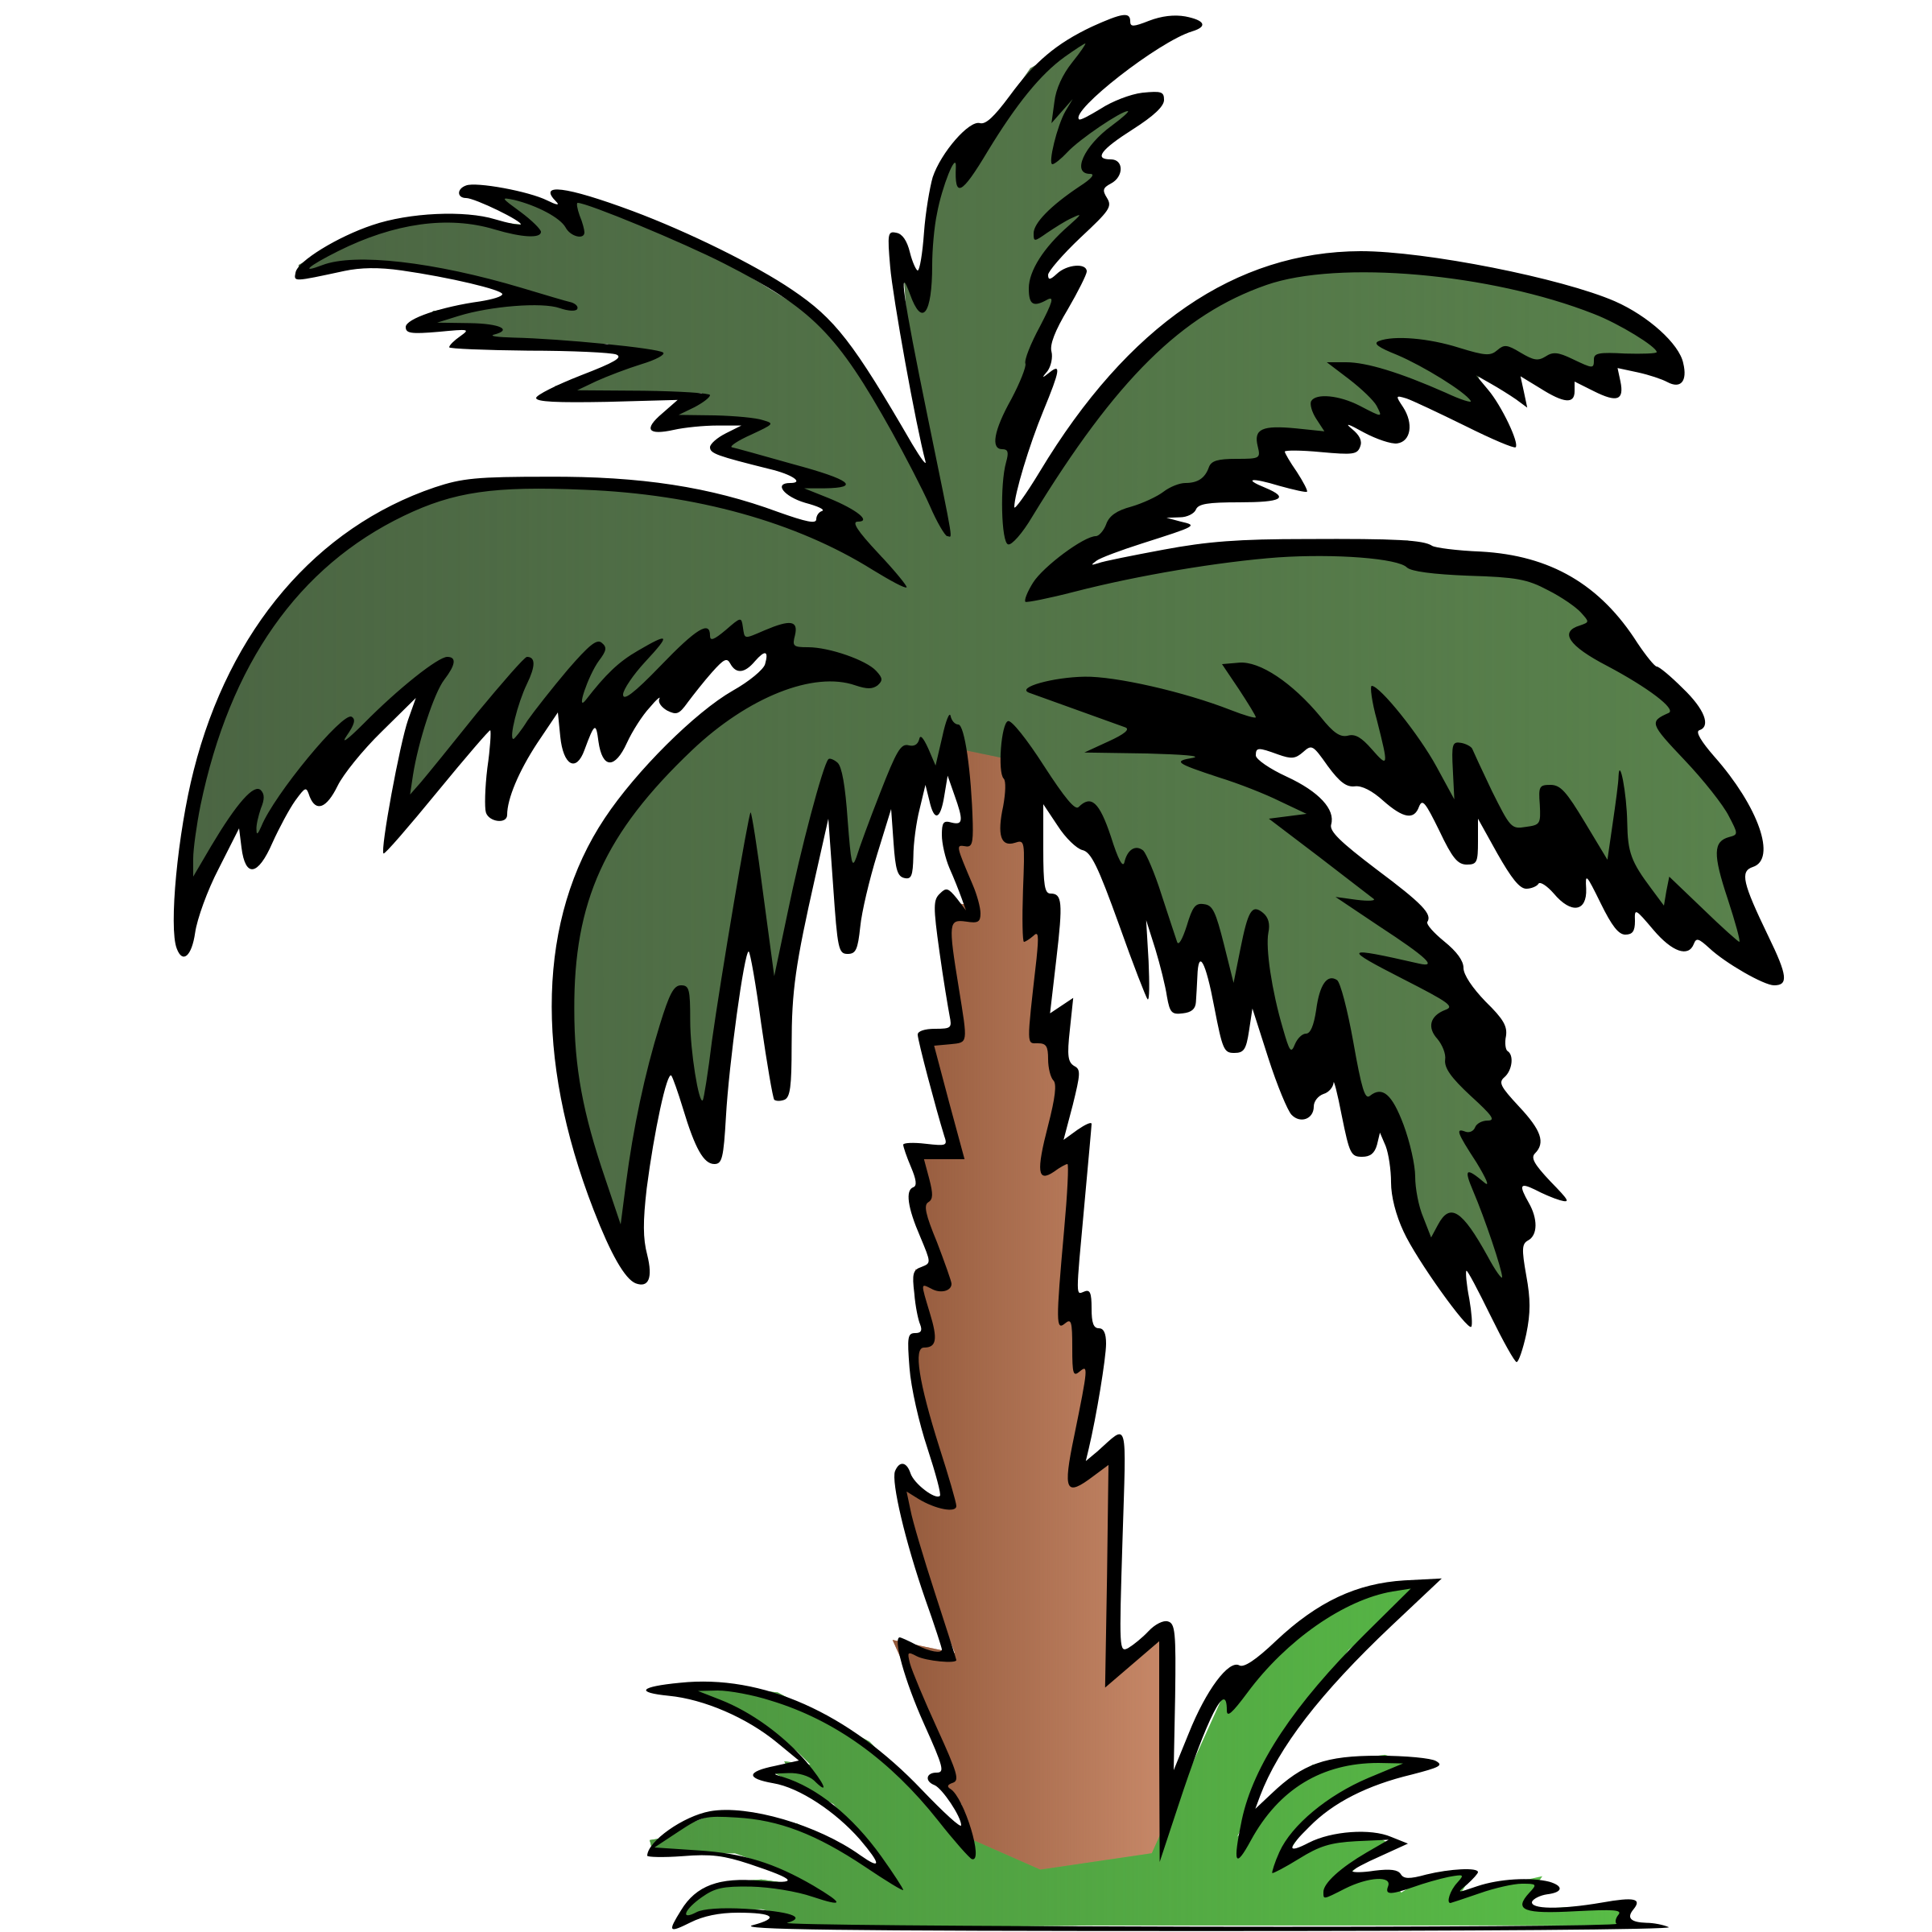 Palm big image png. Clipart tree colour